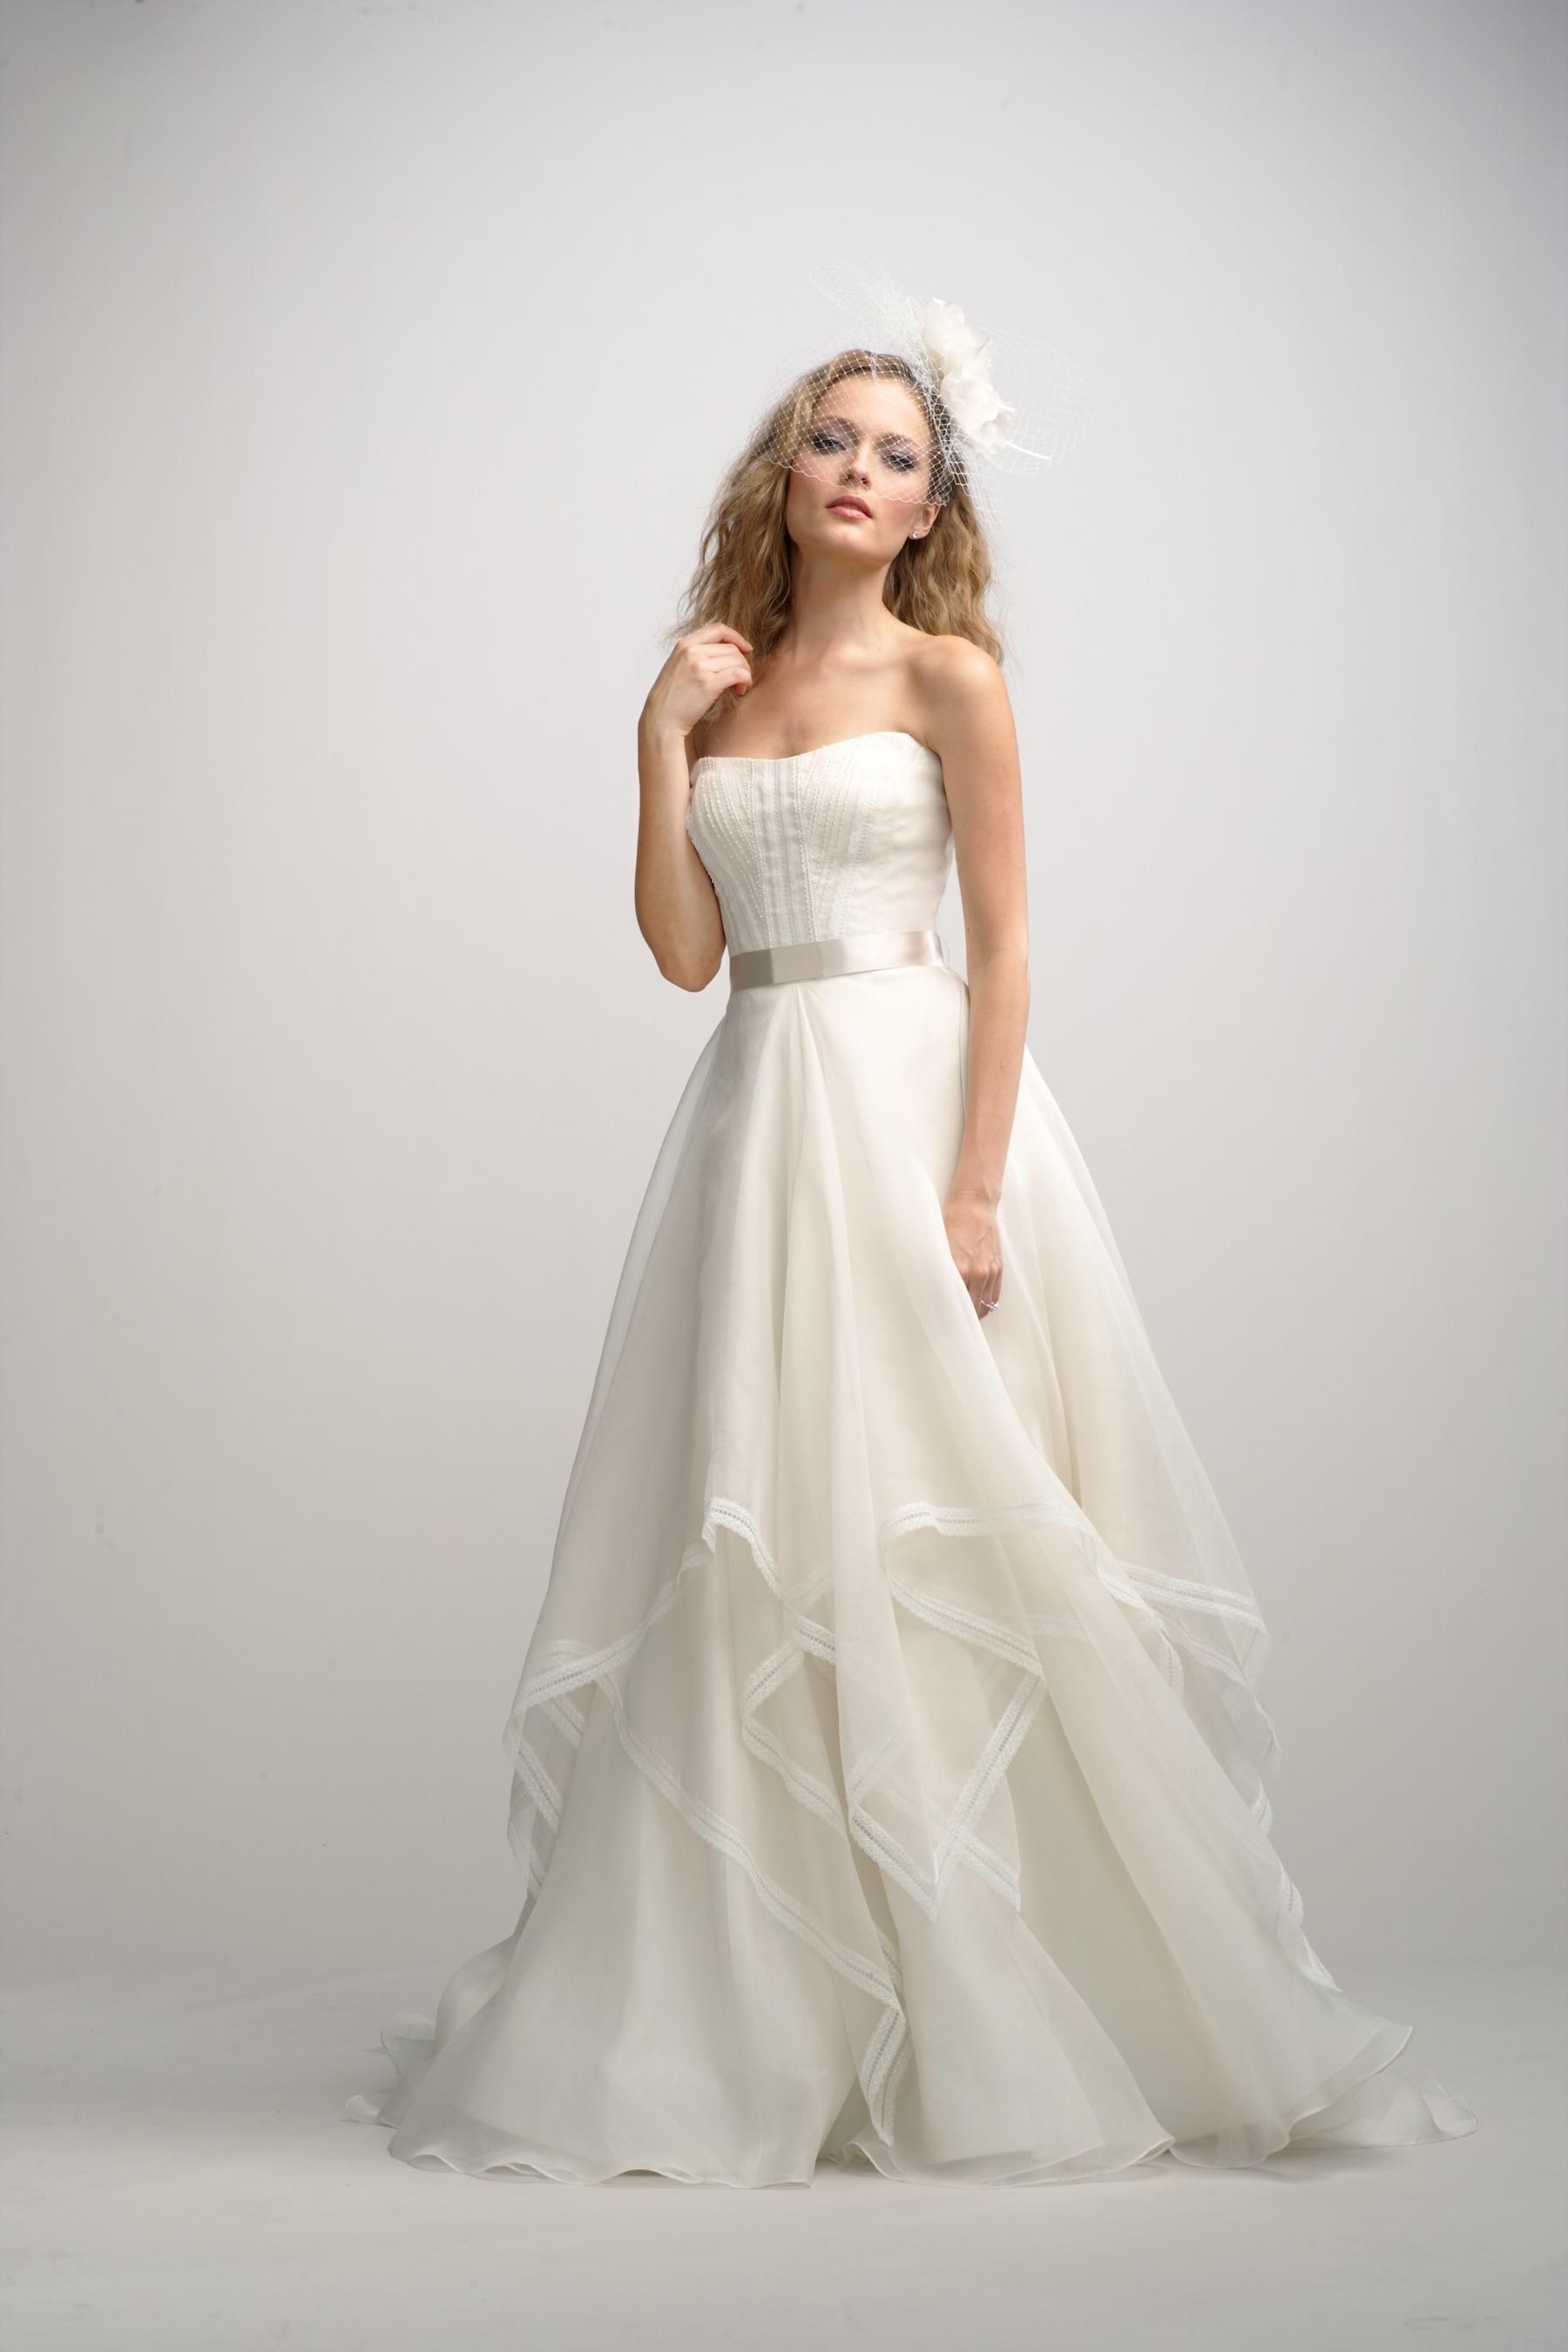 Fall-2012-wedding-dress-watters-bridal-gown-10.original.original